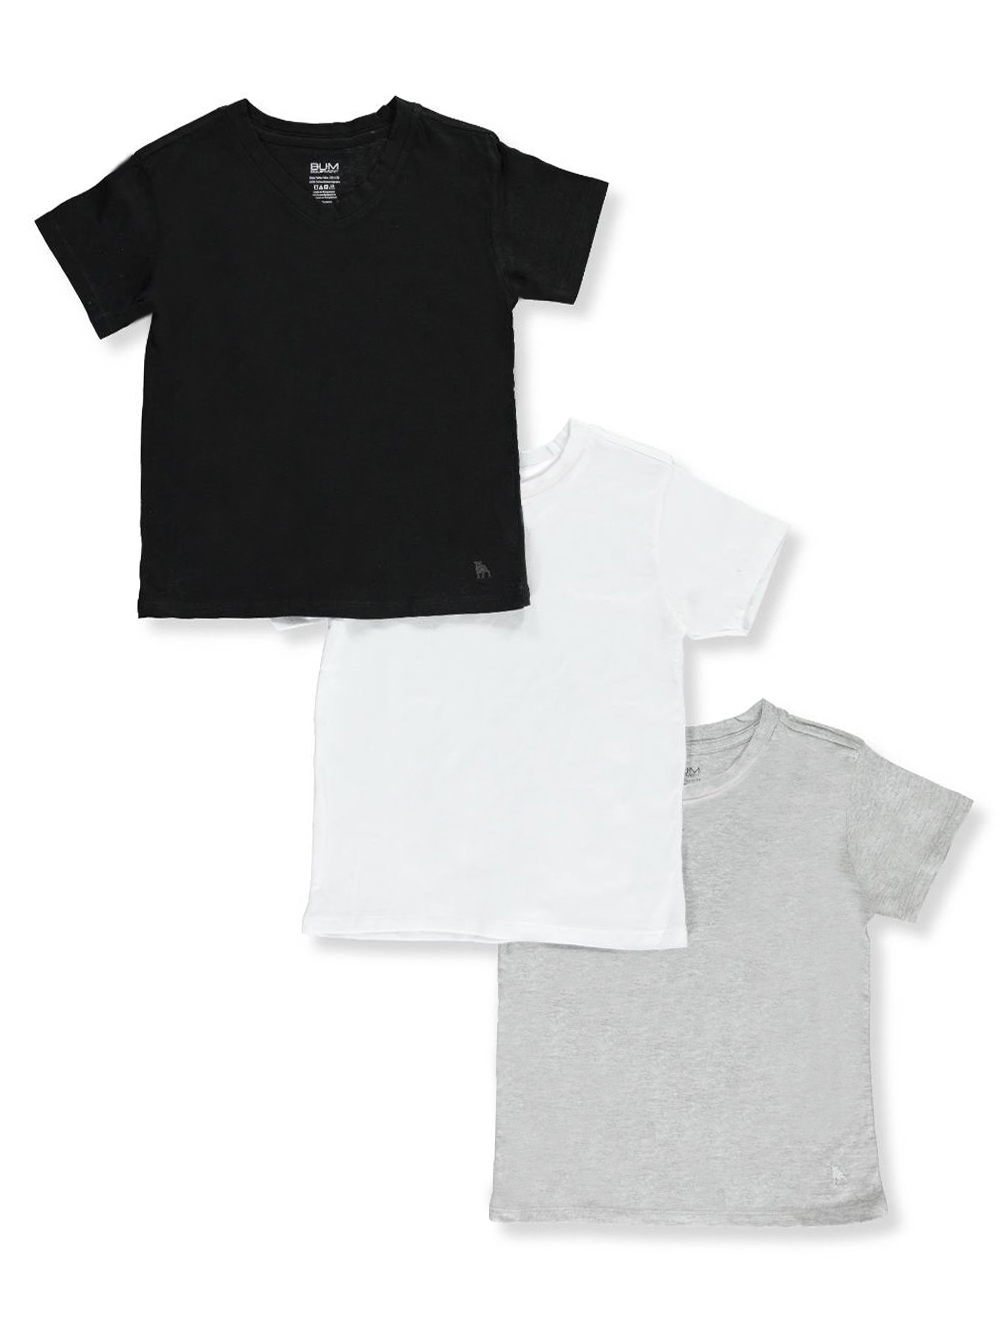 Hanes Little Boys Original Crew Tee Shirts Toddler Size 2T-3T Pack Of 3 NWT